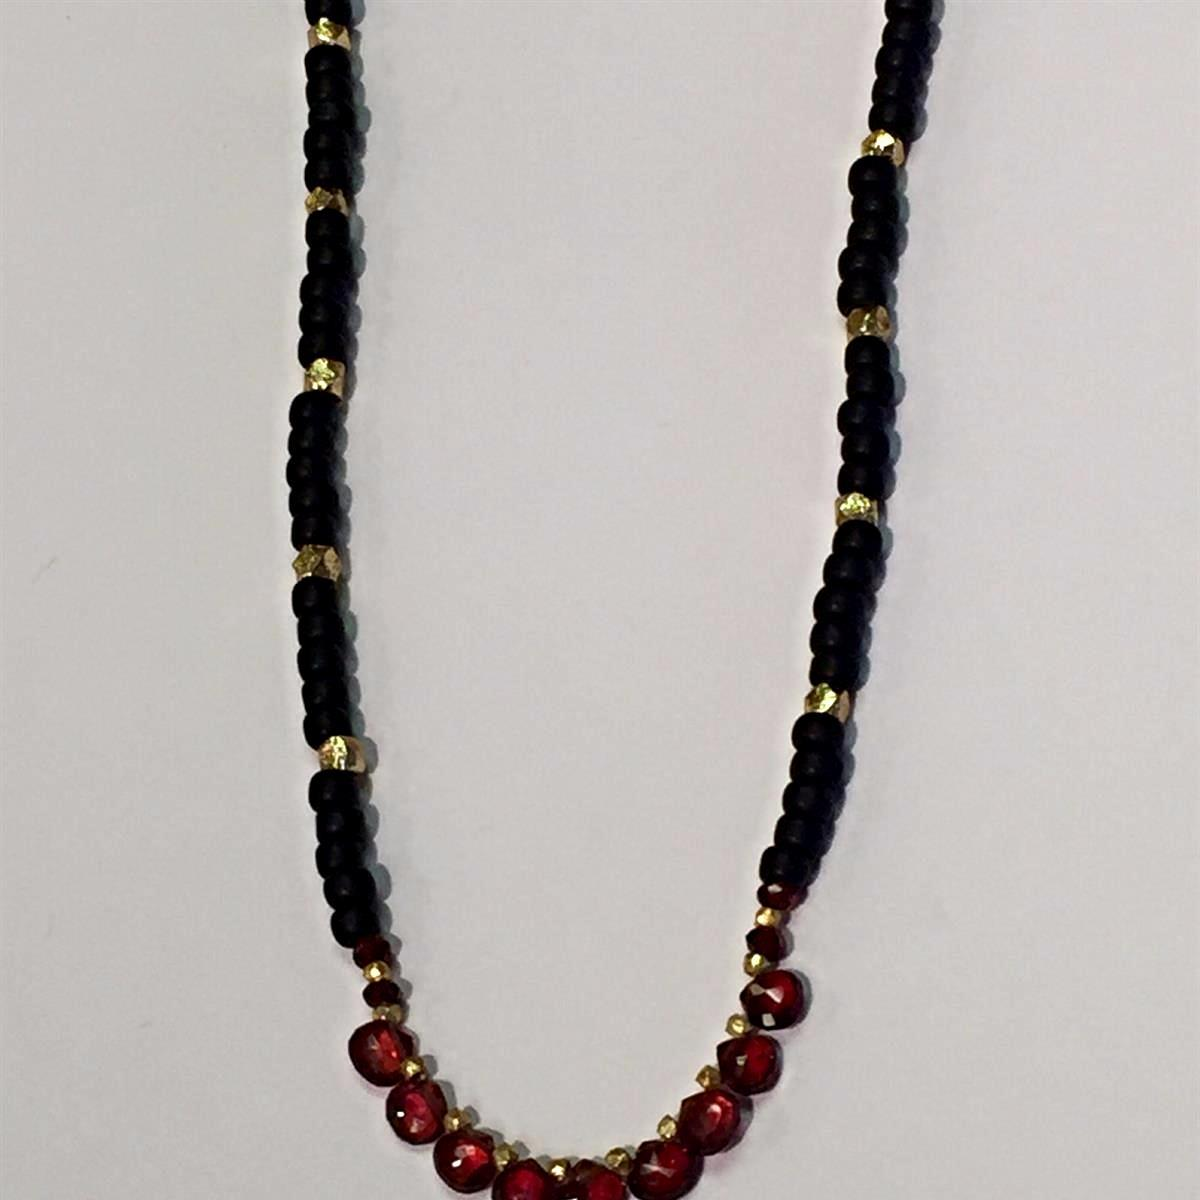 Garnet Onyx Necklace